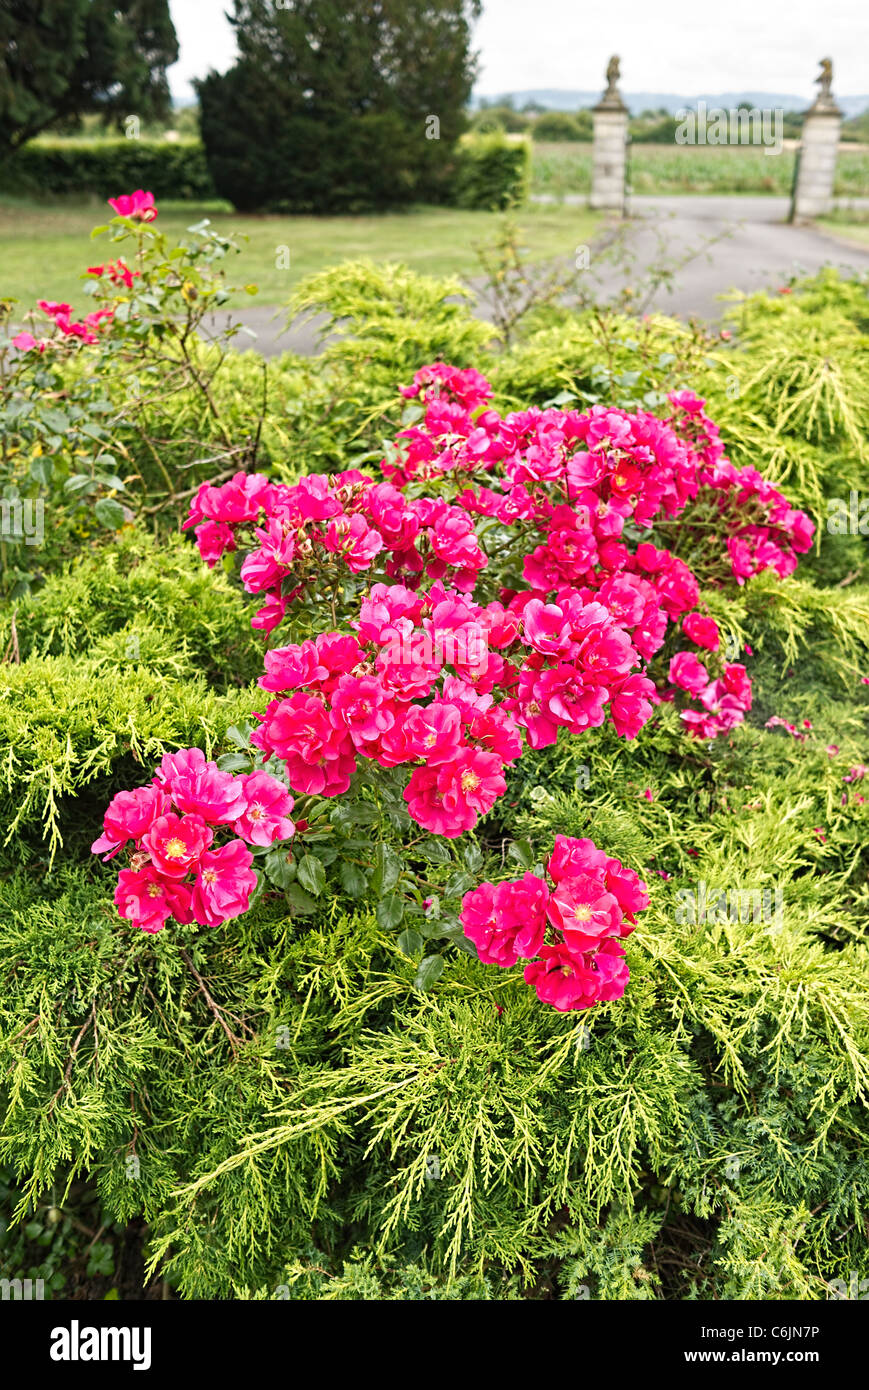 Unusual combination of pink cluster-flowered roses and prostrate evergreen conifers - Stock Image